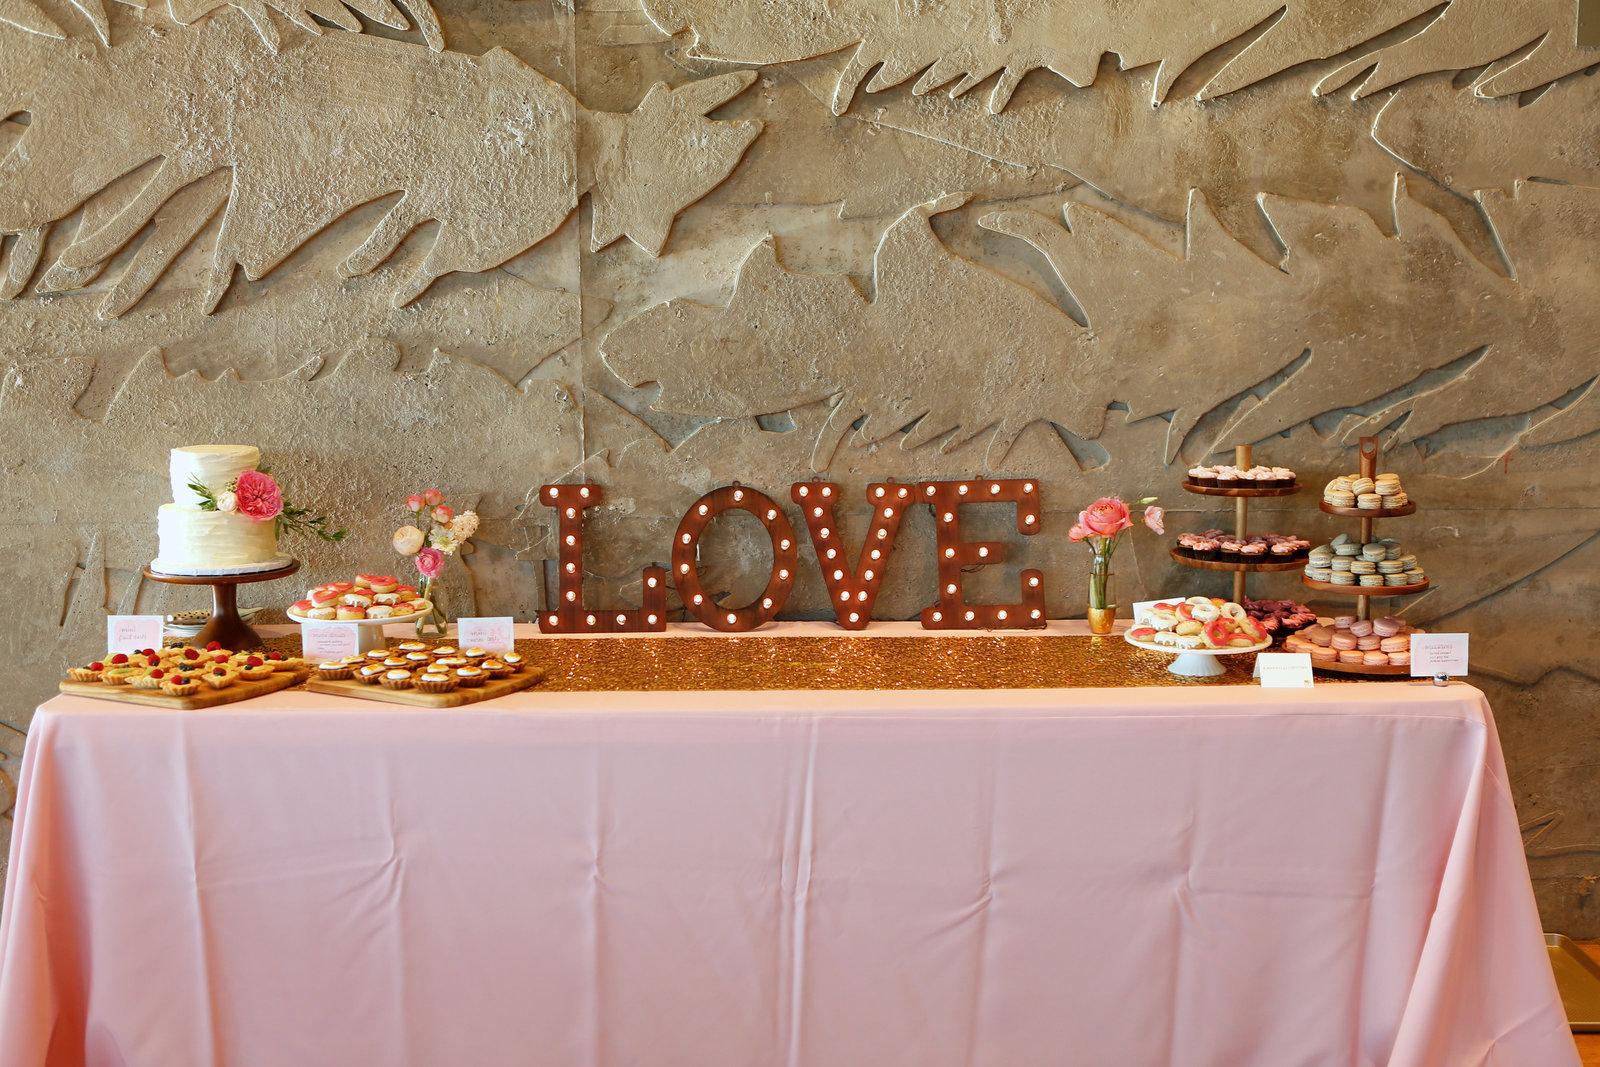 mini dessert bar with donuts cake and tarts during a wedding reception